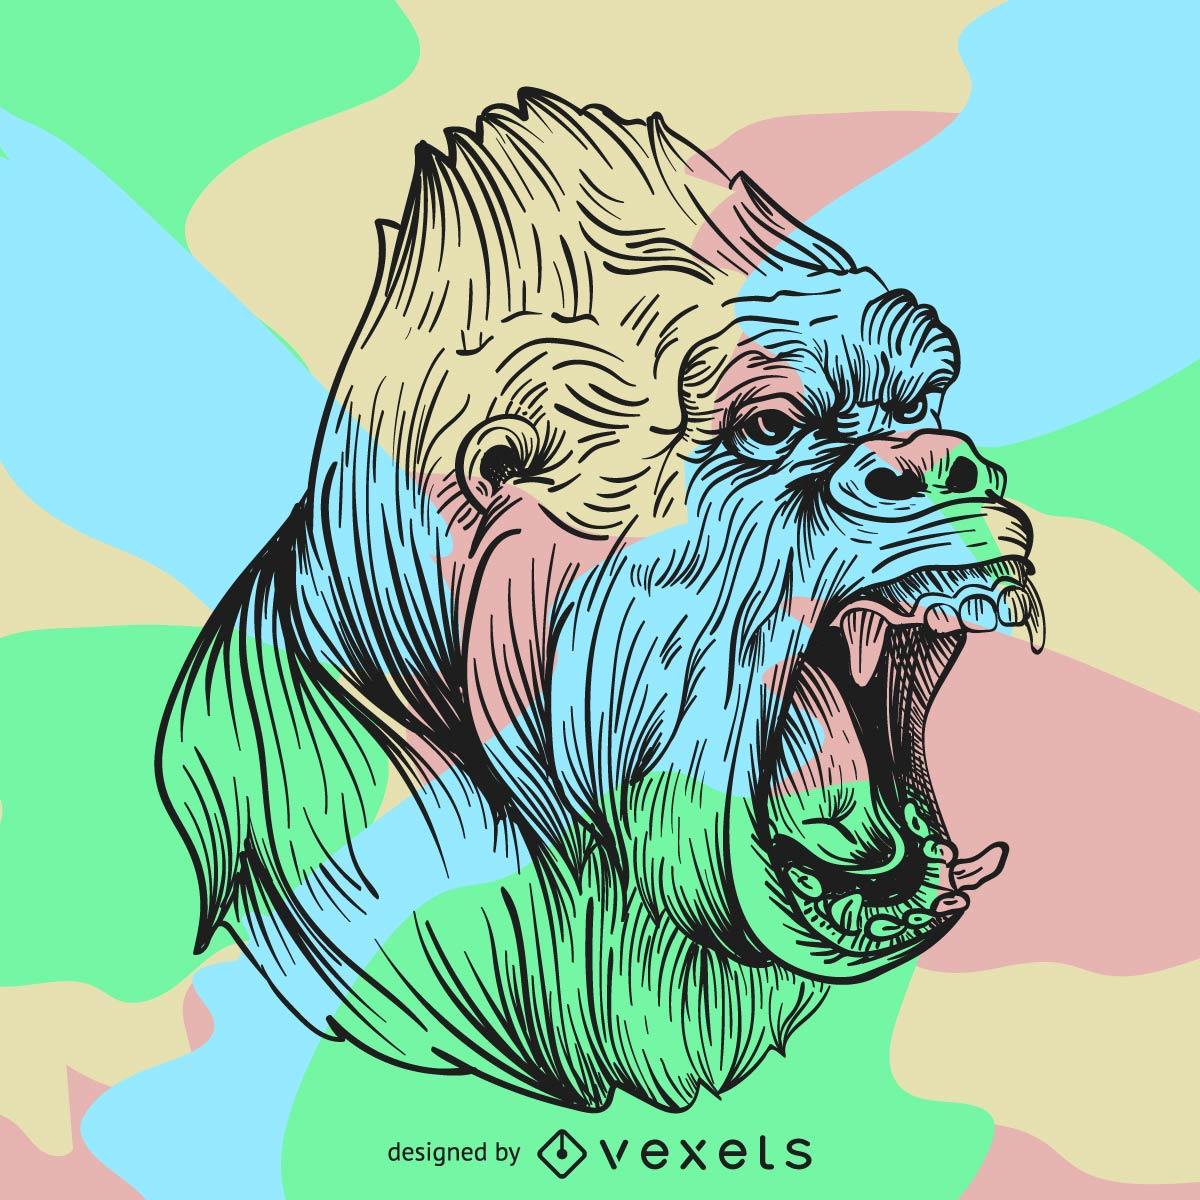 angry gorilla line art illustration vector download